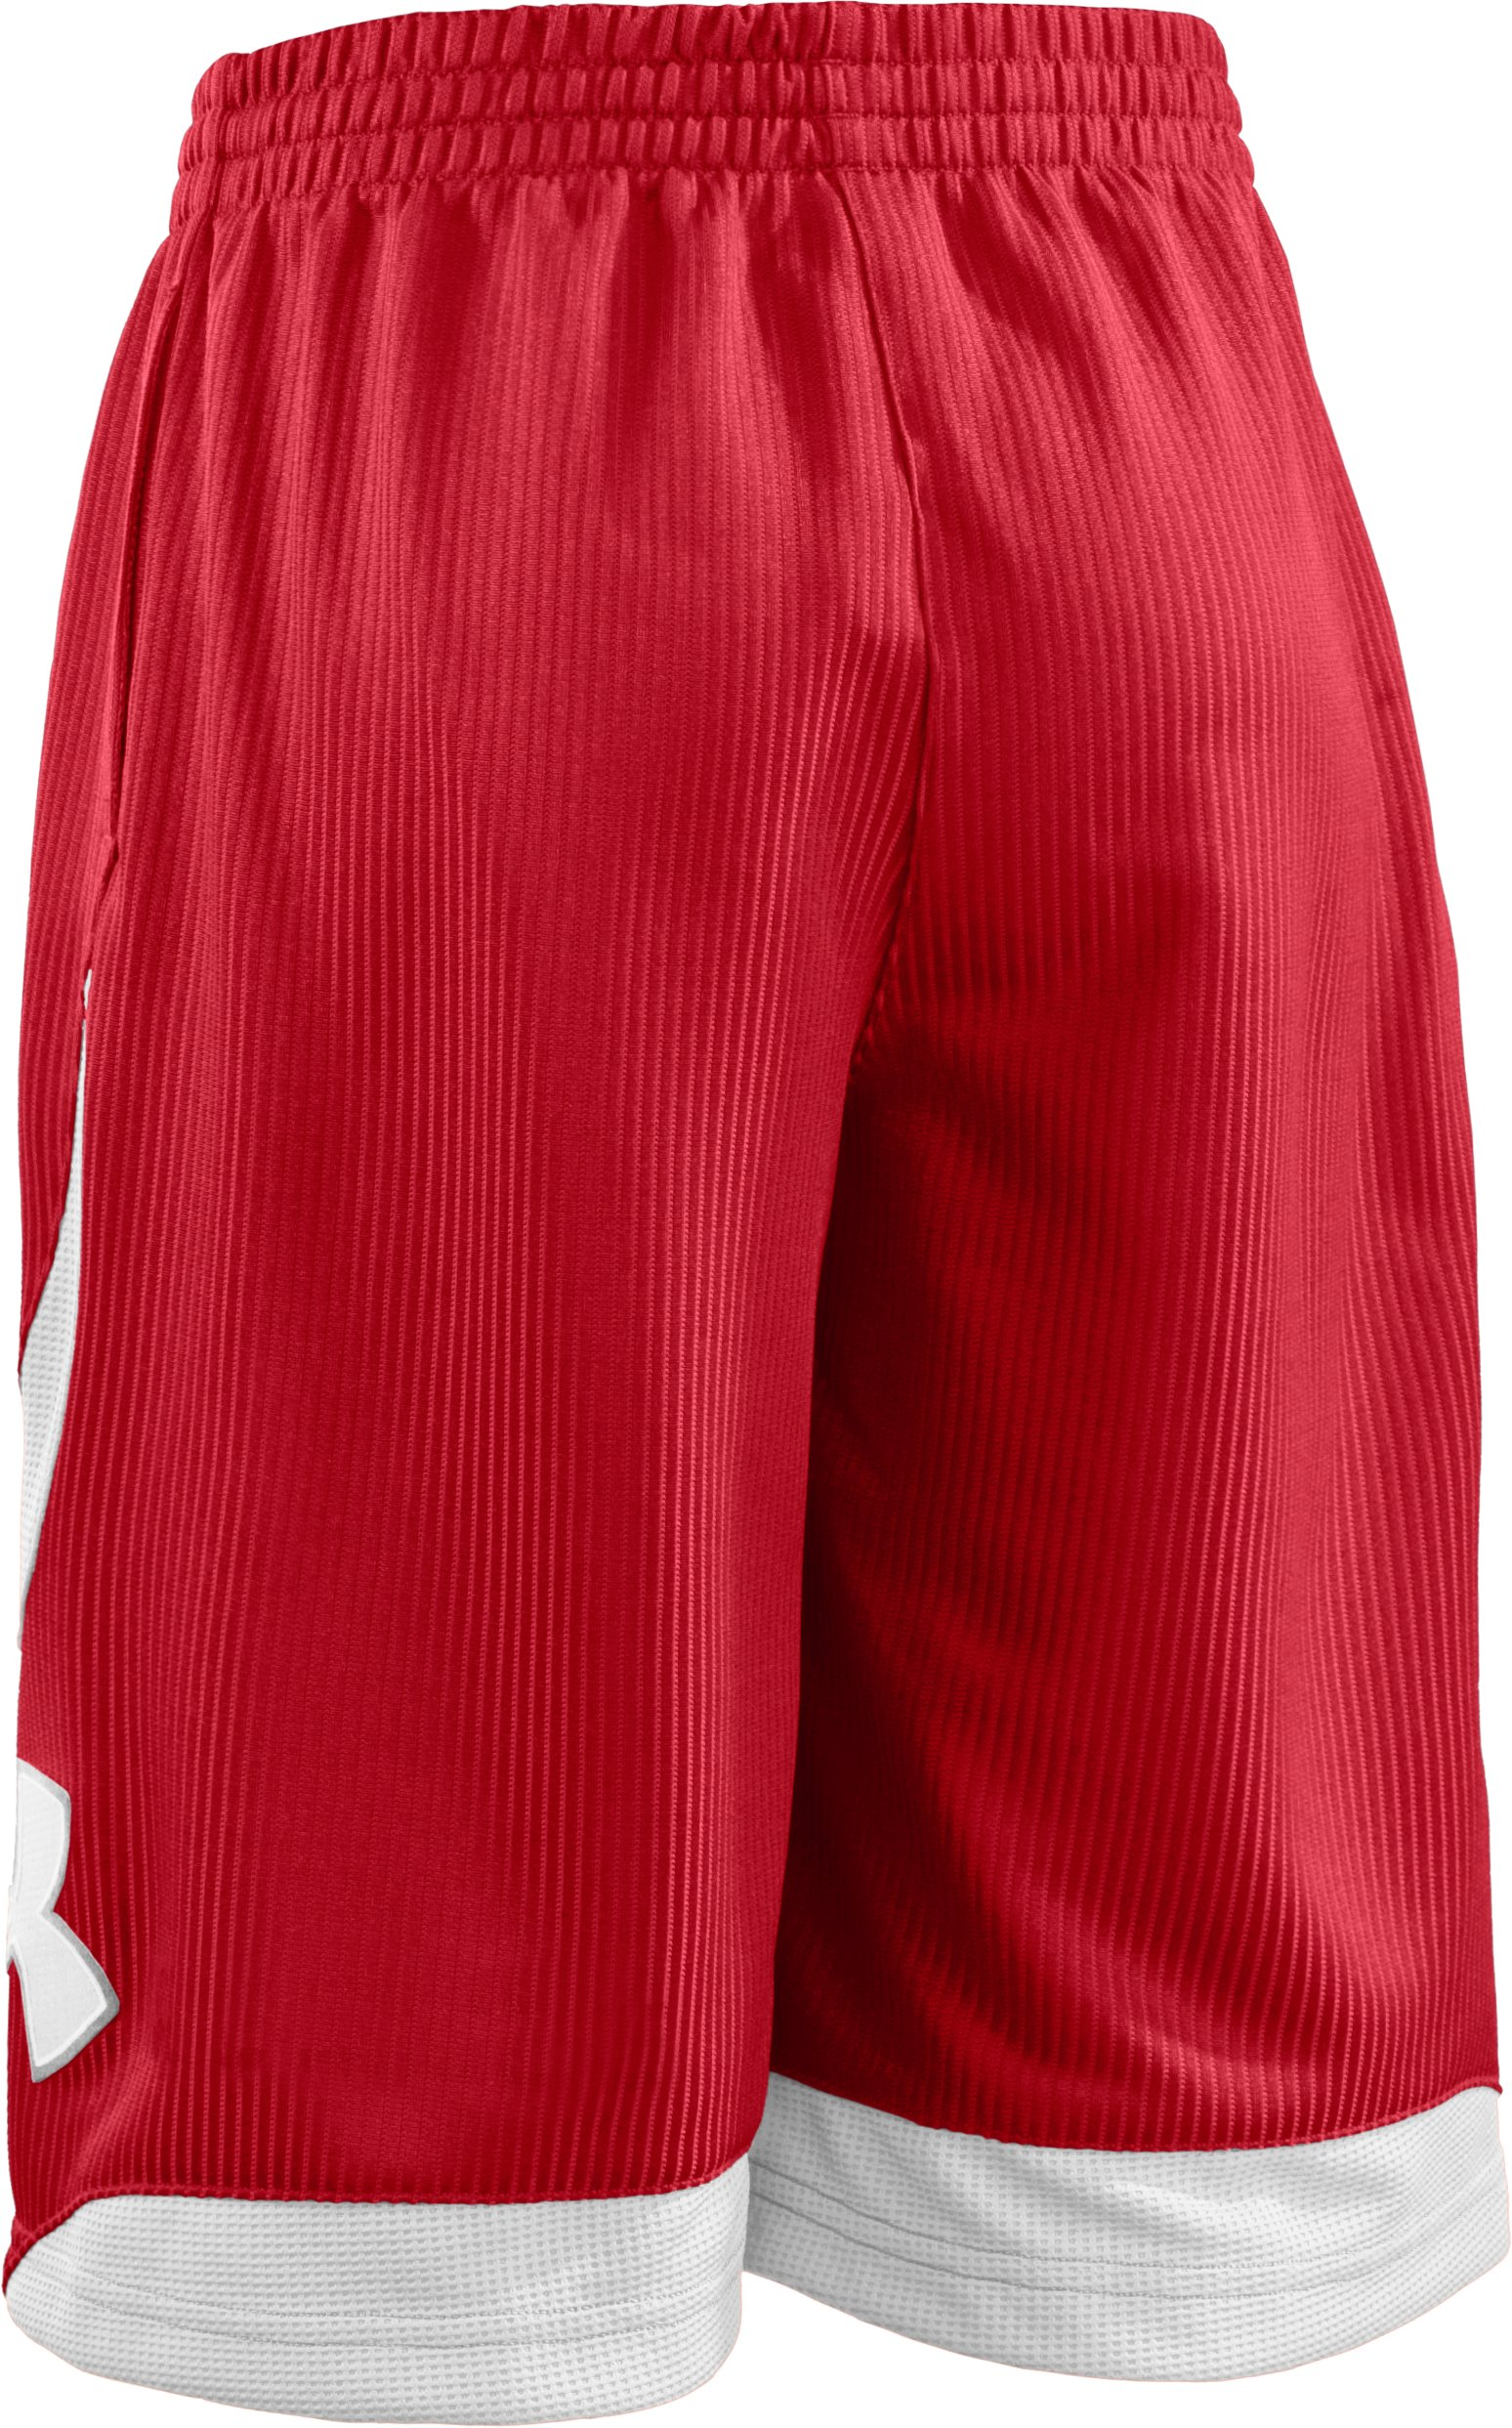 "Boys' Valkyrie 10"" Basketball Shorts, Red"